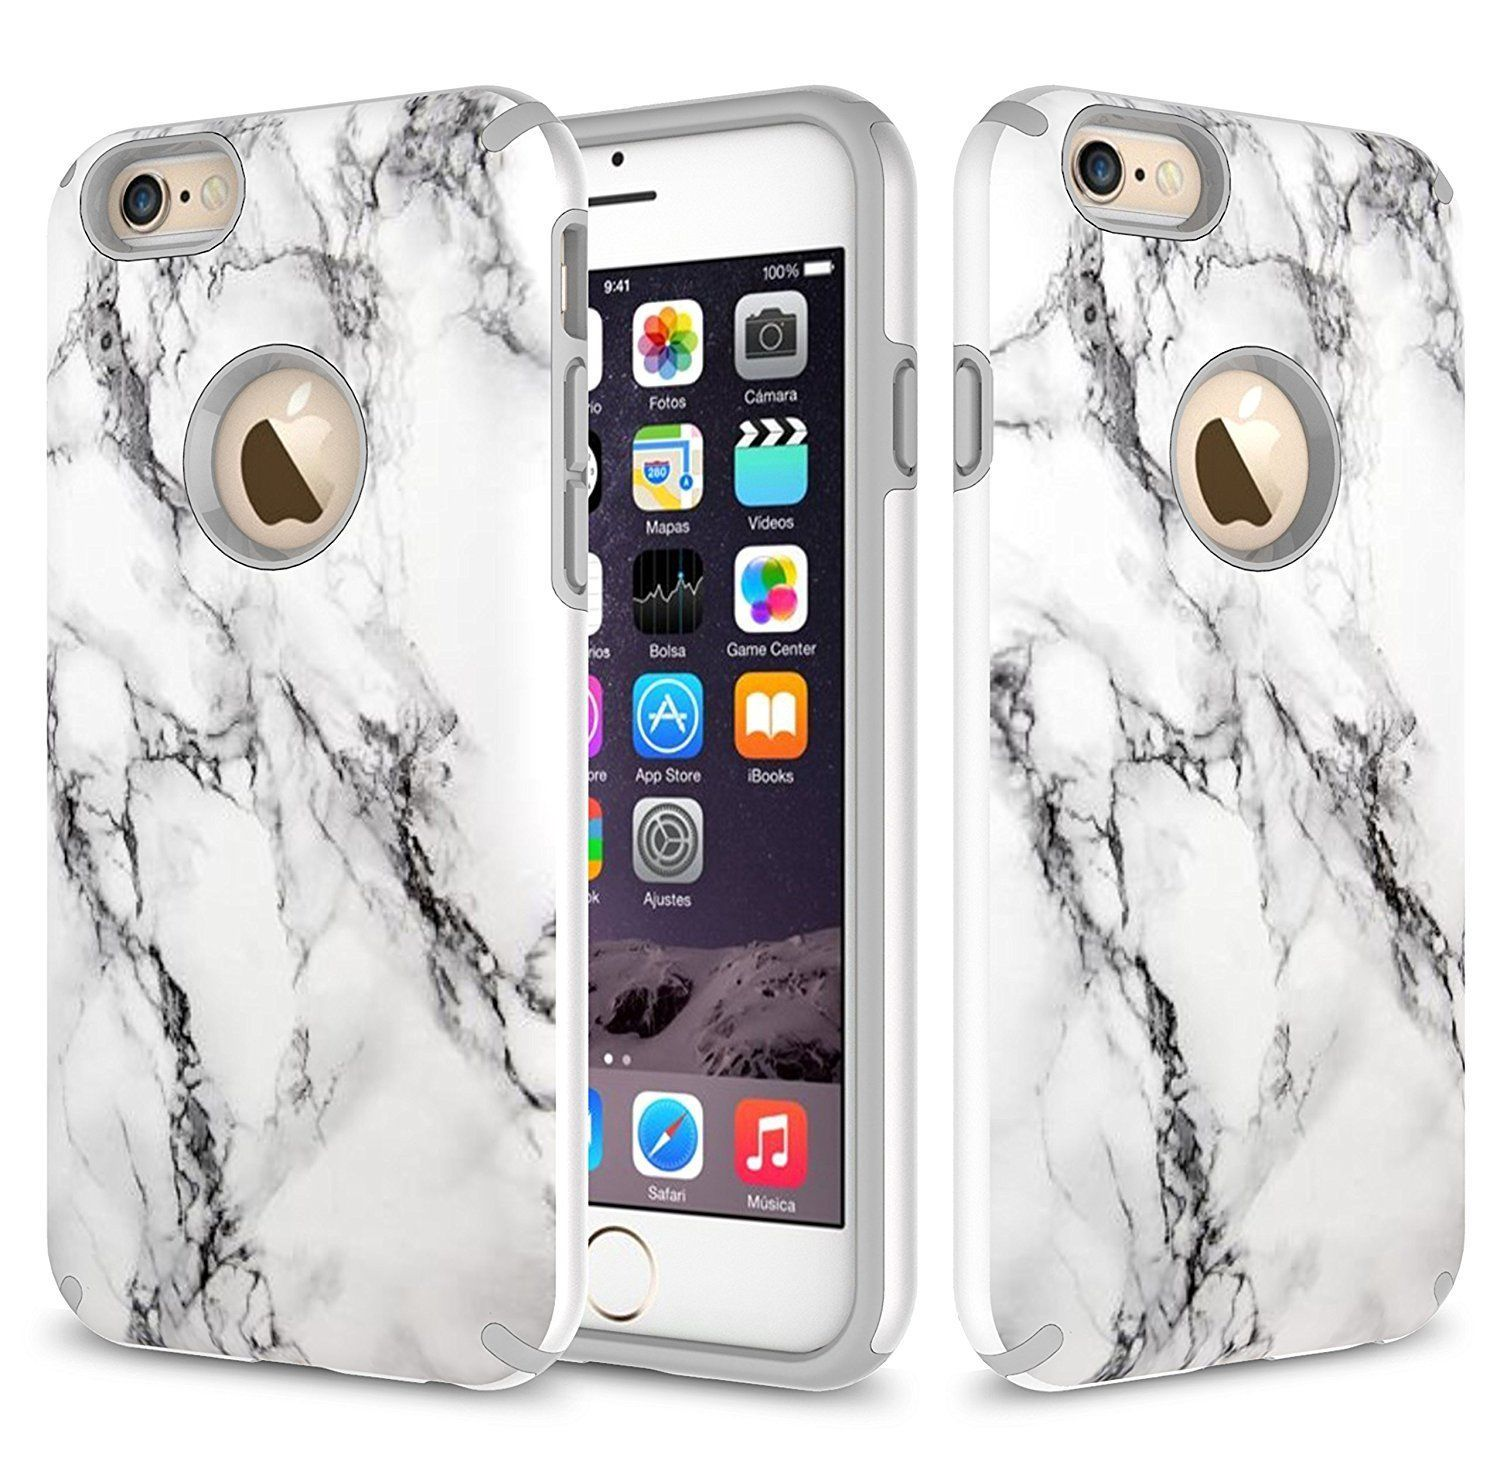 Apple Iphone 6 Plus 6s Case Dual Layer Shockproof Bumper 132361794486 For 799